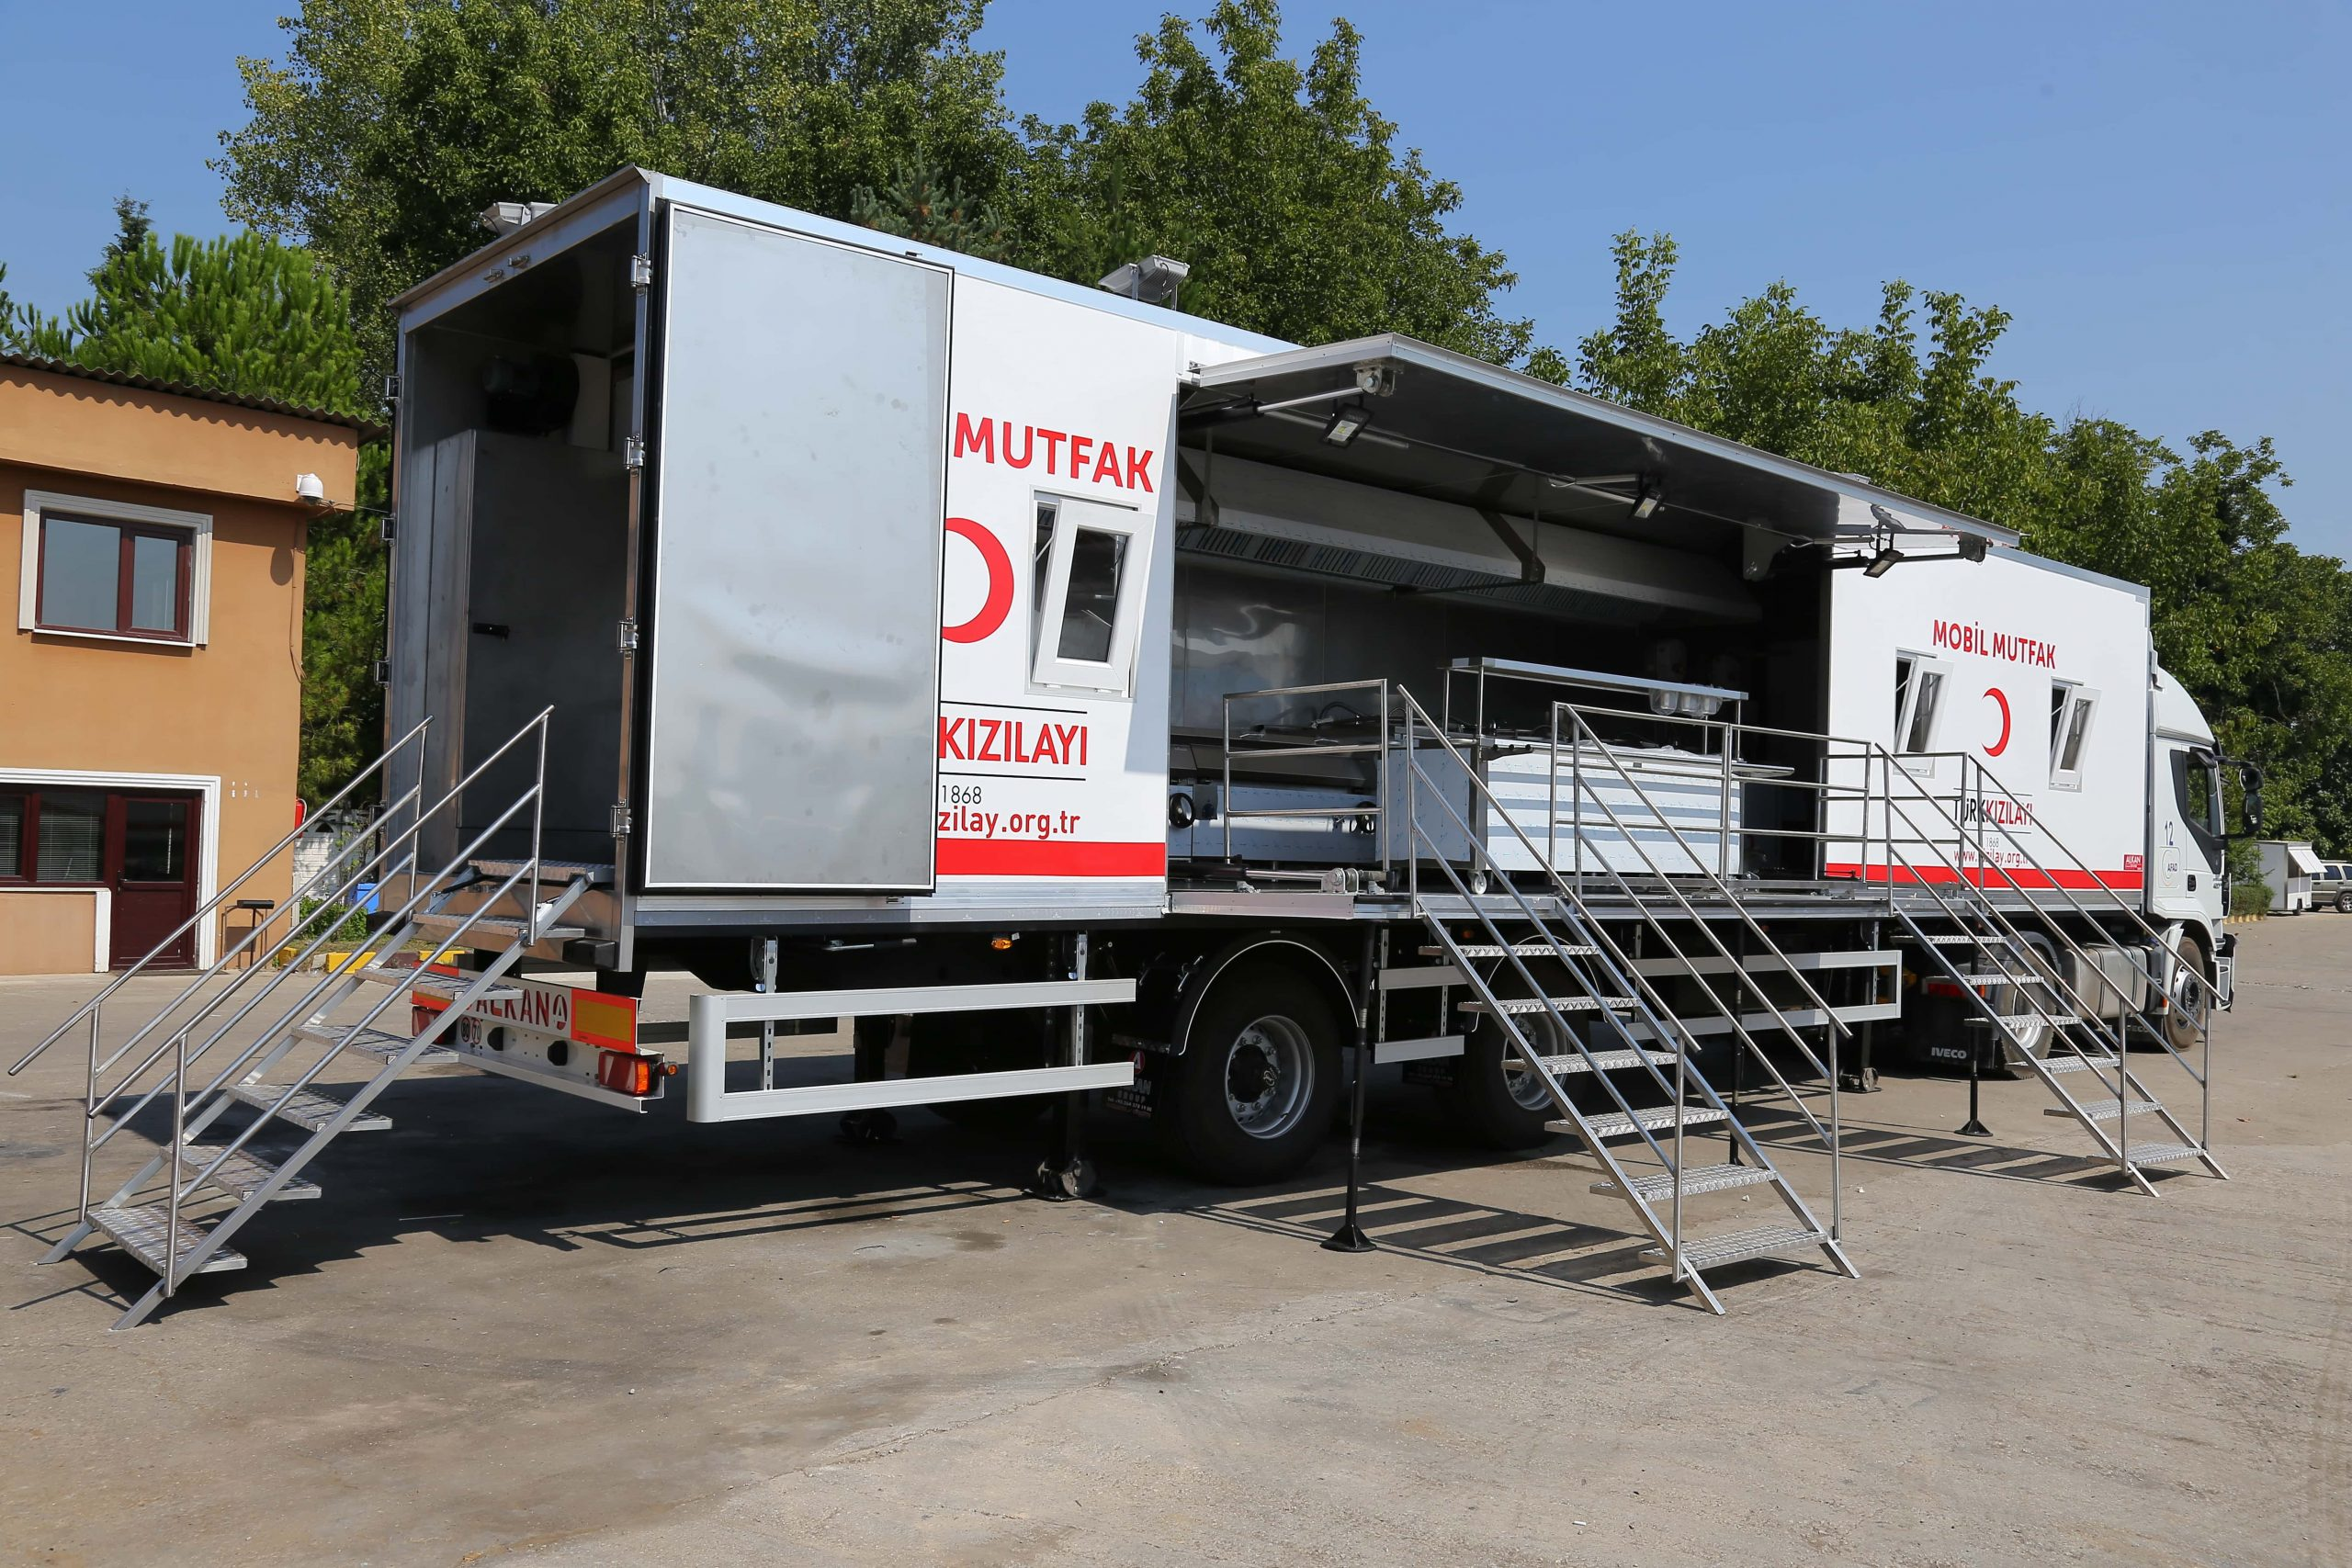 mobile-field-kitchen-trailer-vehicle-3-scaled.jpg